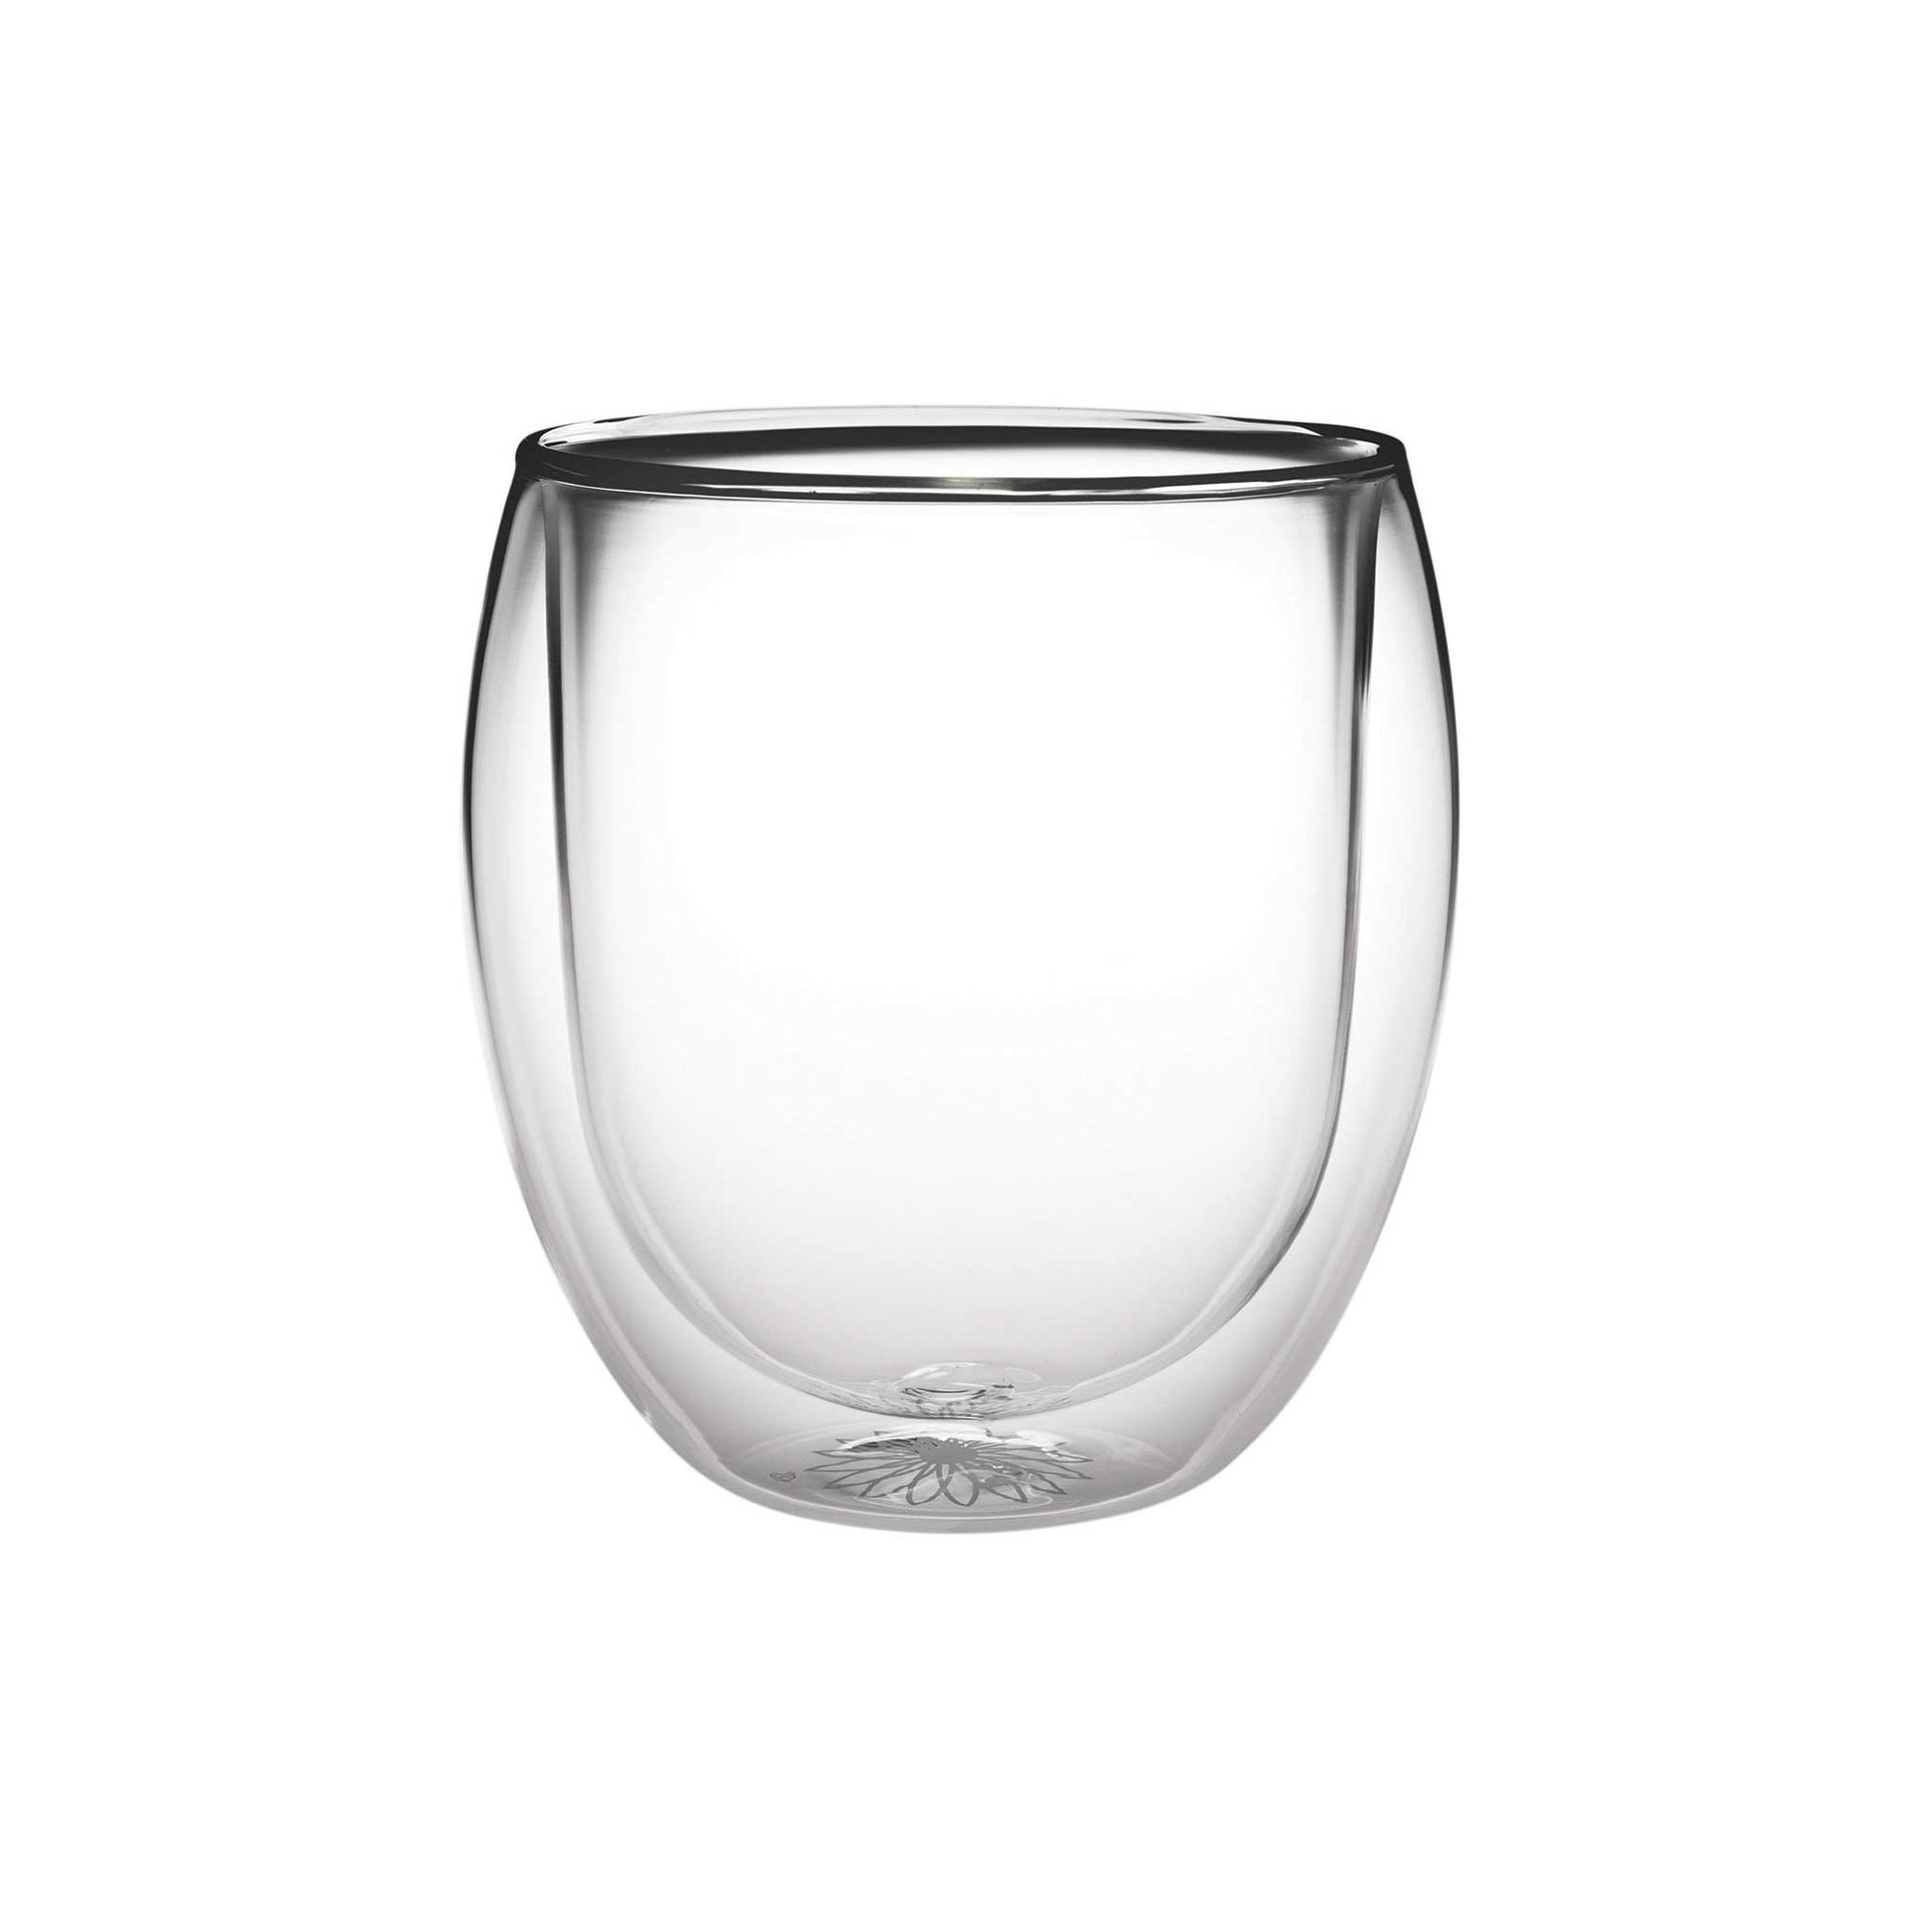 Teaposy rondo double-walled glass tea mug